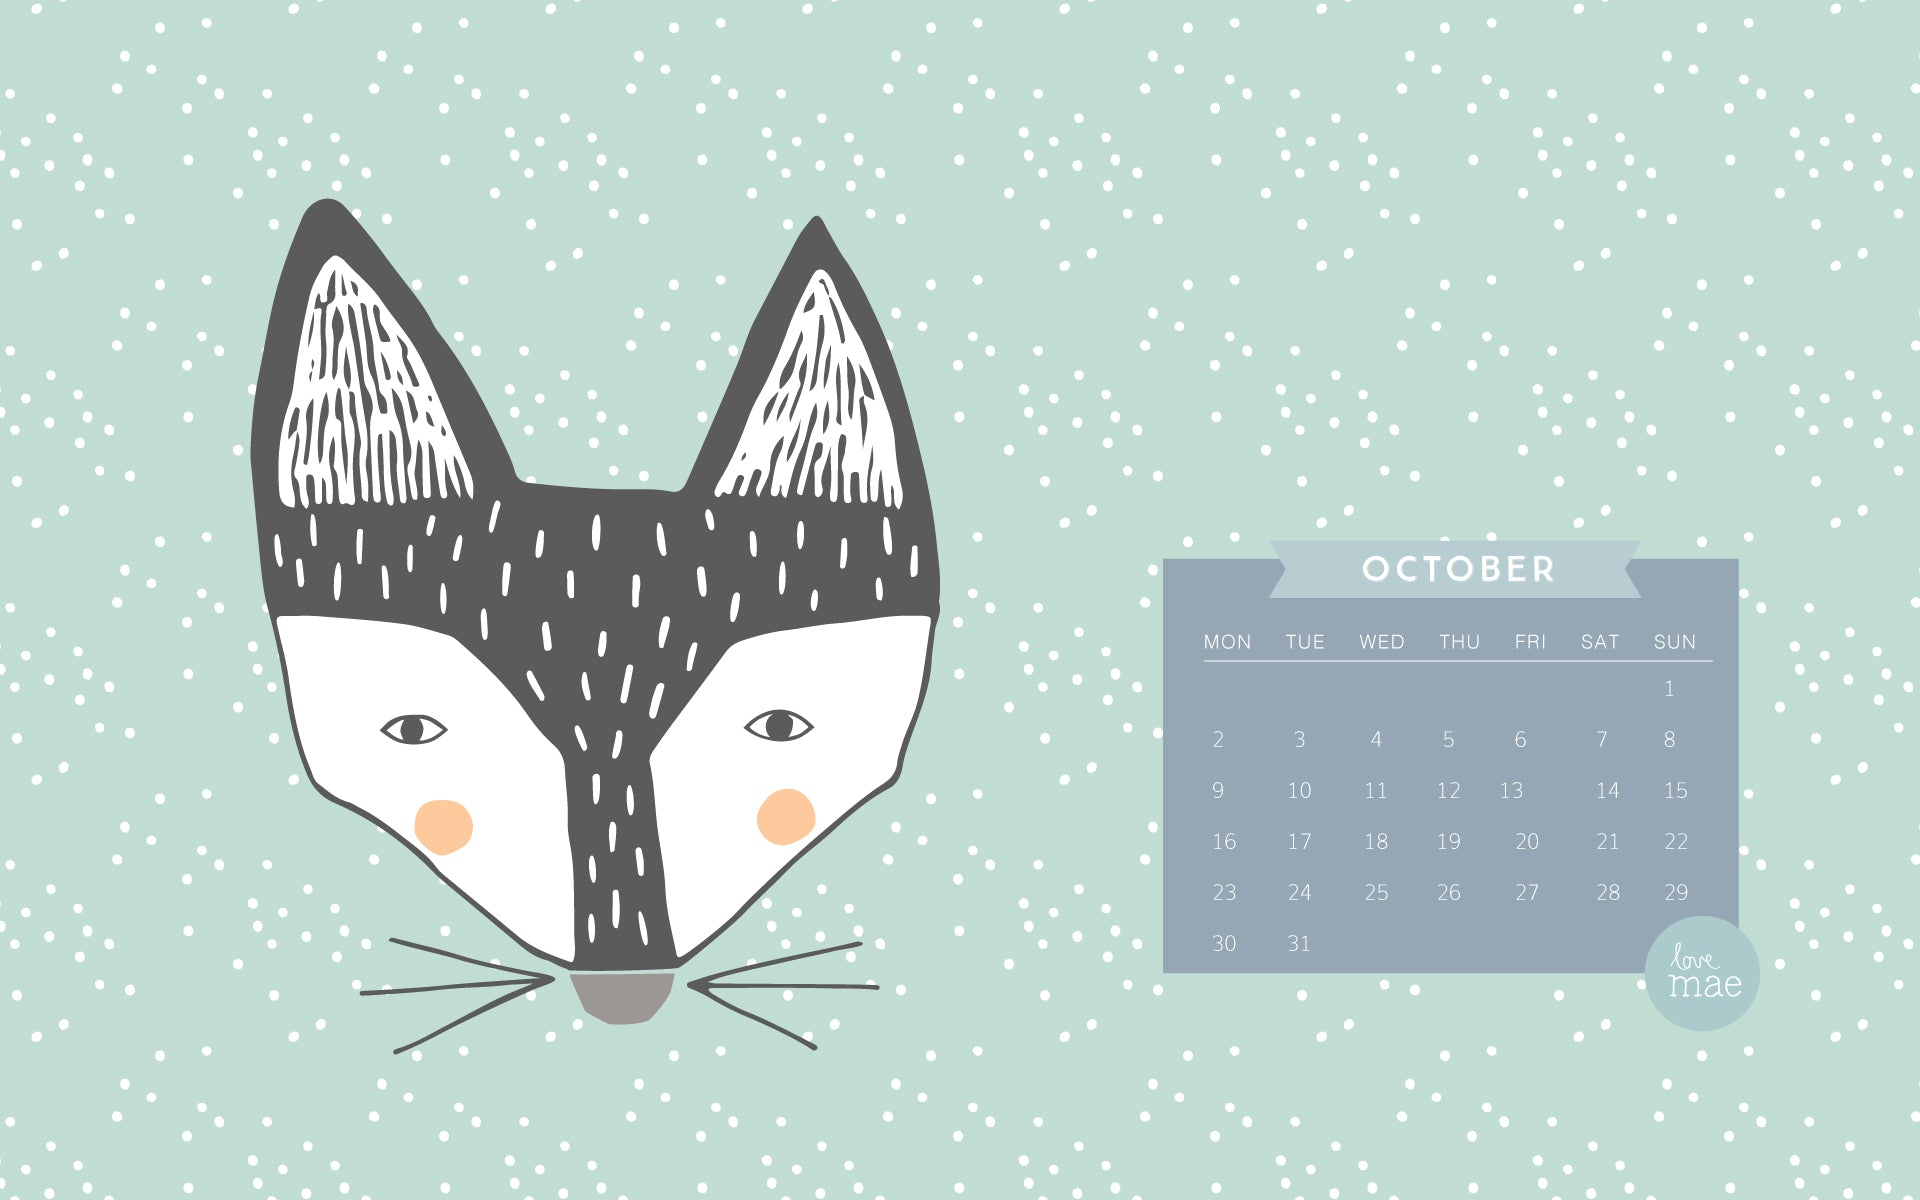 Love Mae Free Downloadable Desktop Calendar for October